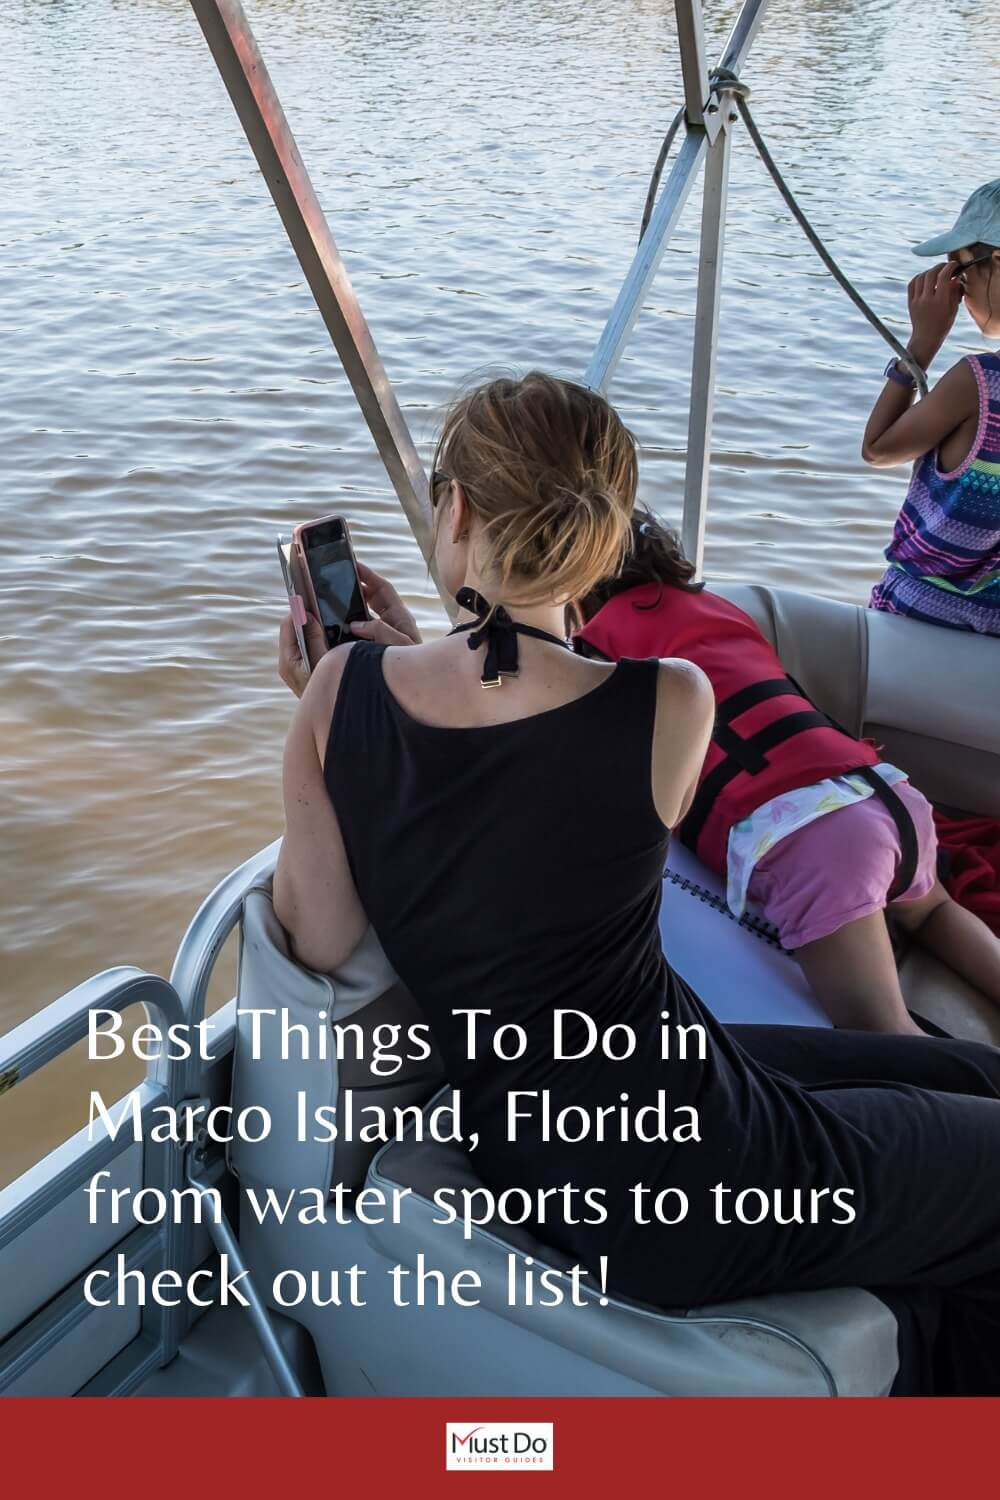 Best Things To Do in Marco Island, Florida from watersports to boat tours check out the list! Must Do Visitor Guides | MustDo.com